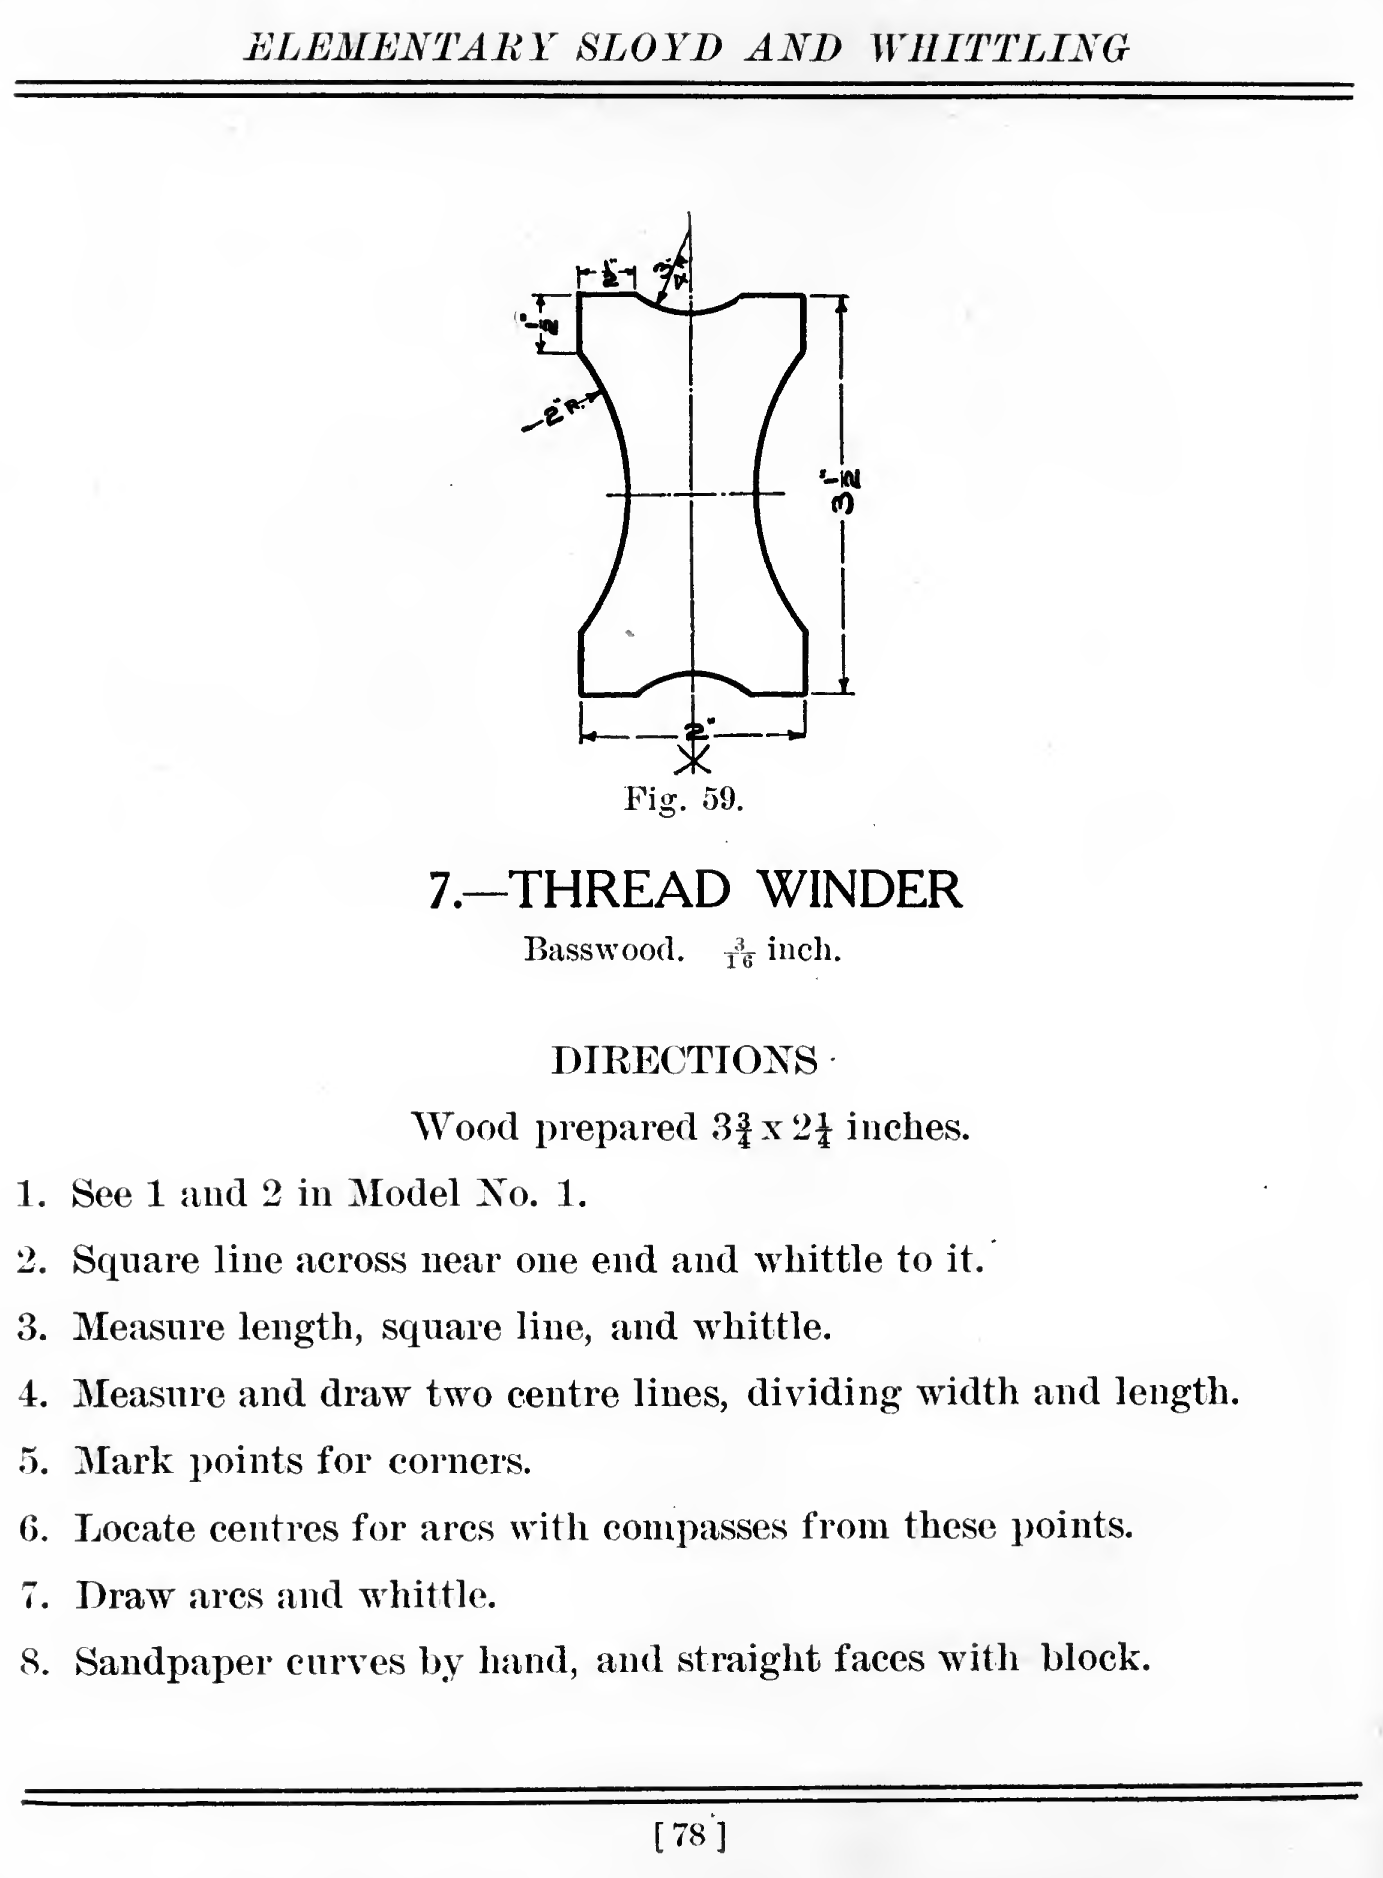 Larsson's plan for a thread winder.